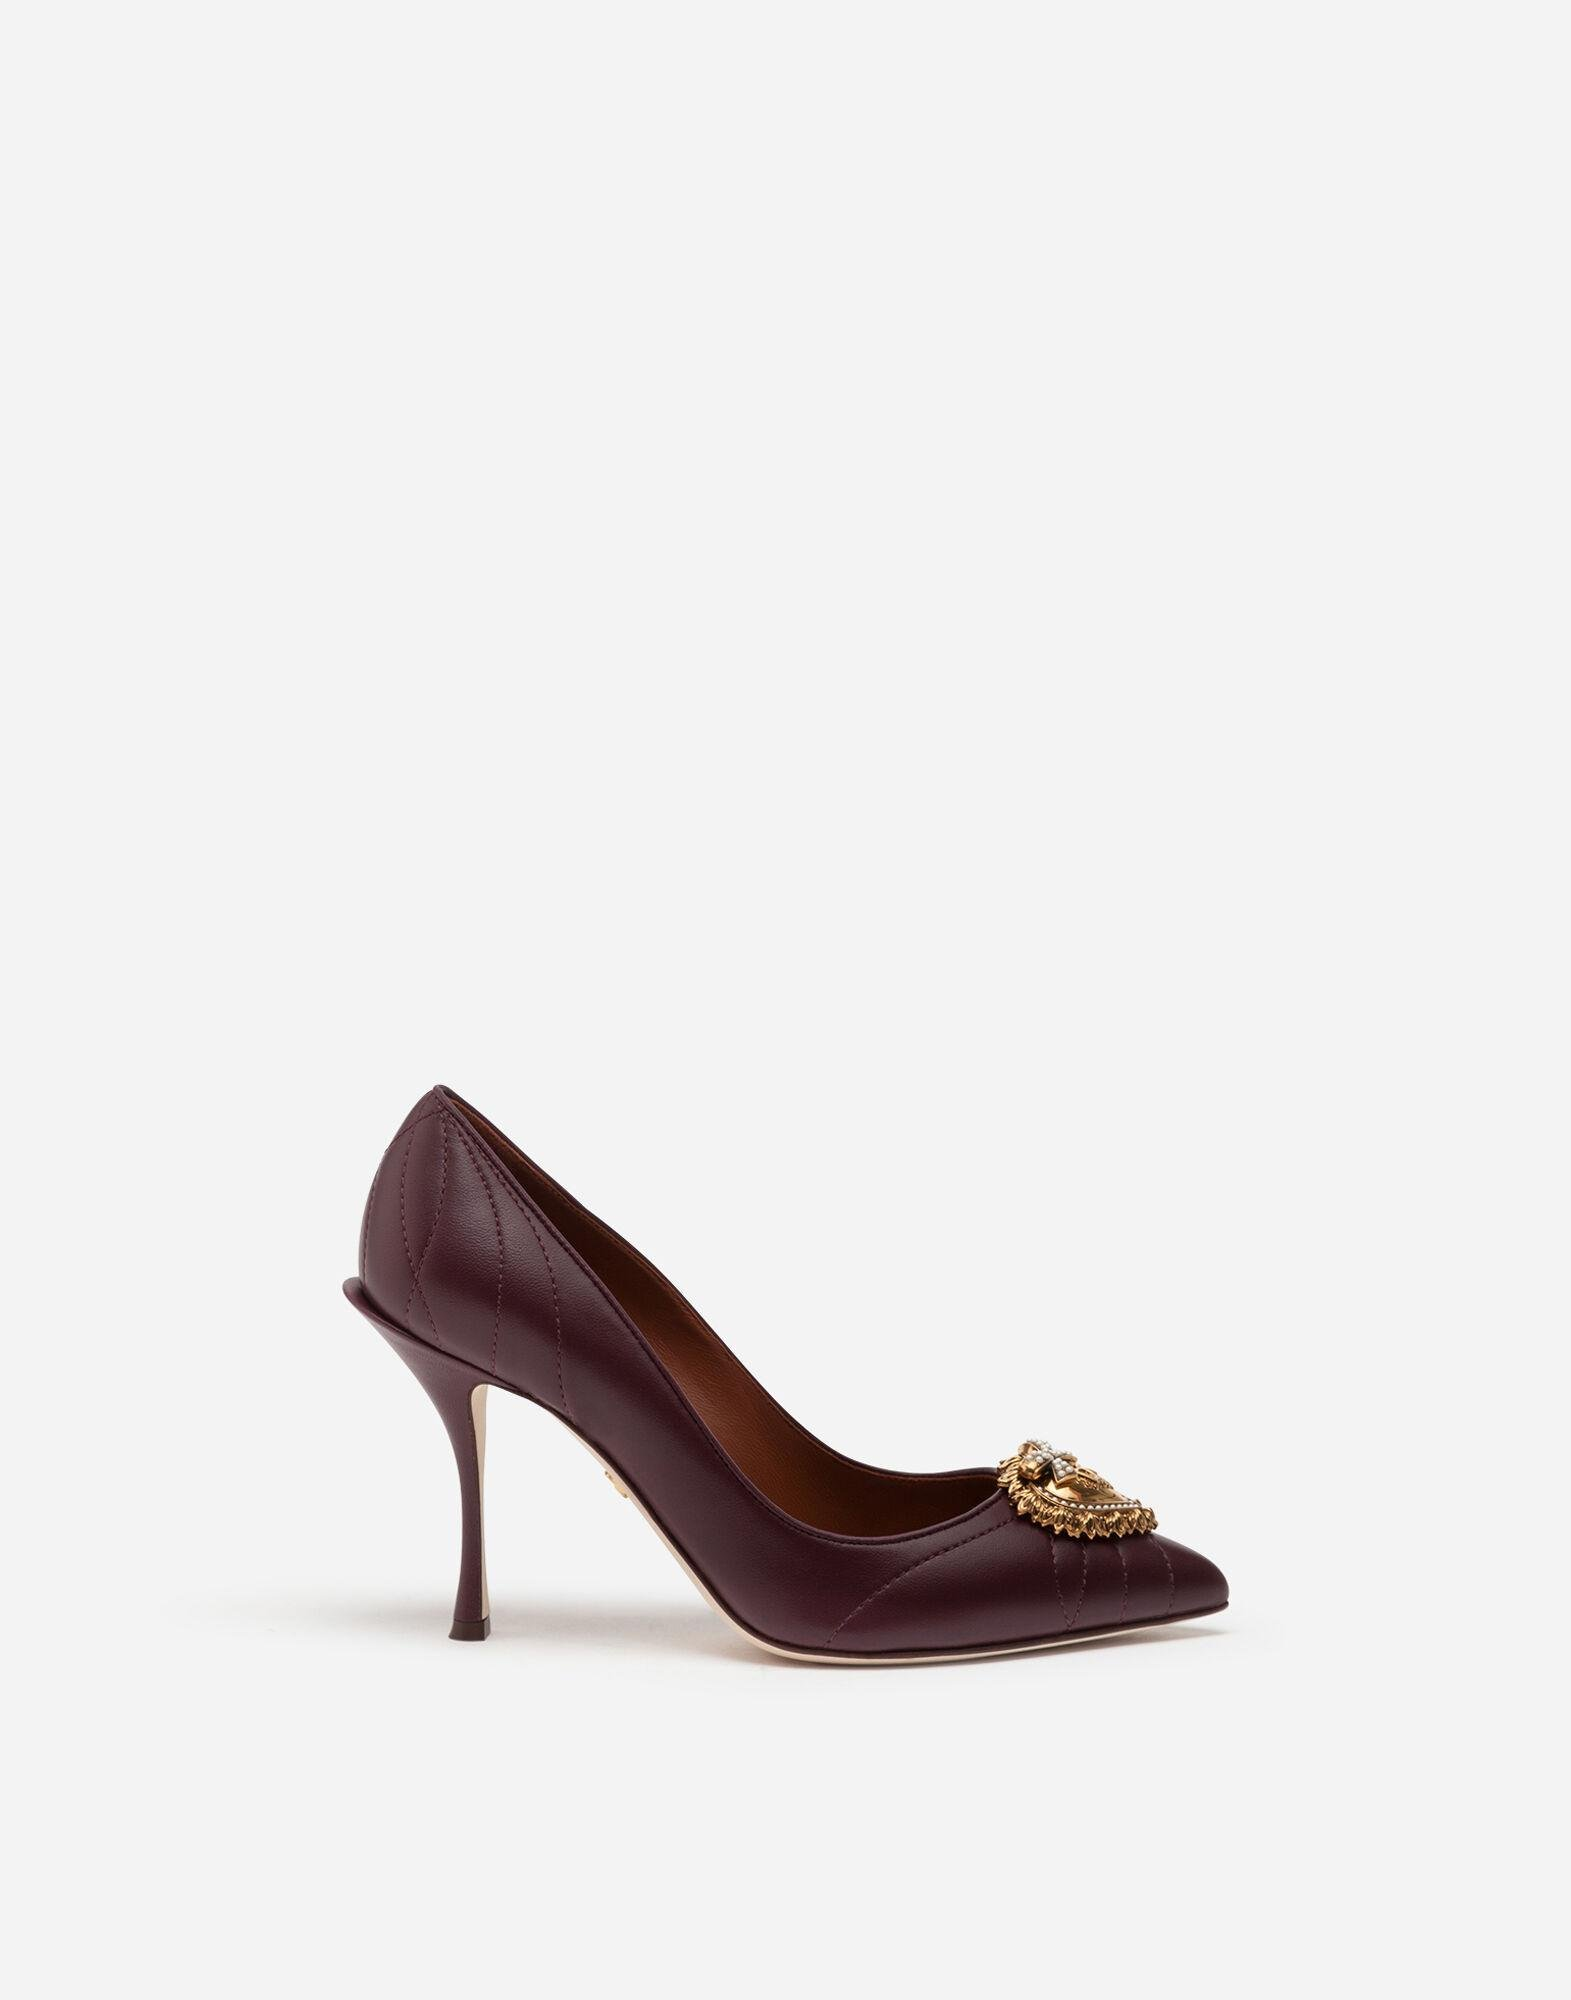 Quilted nappa leather Devotion pumps